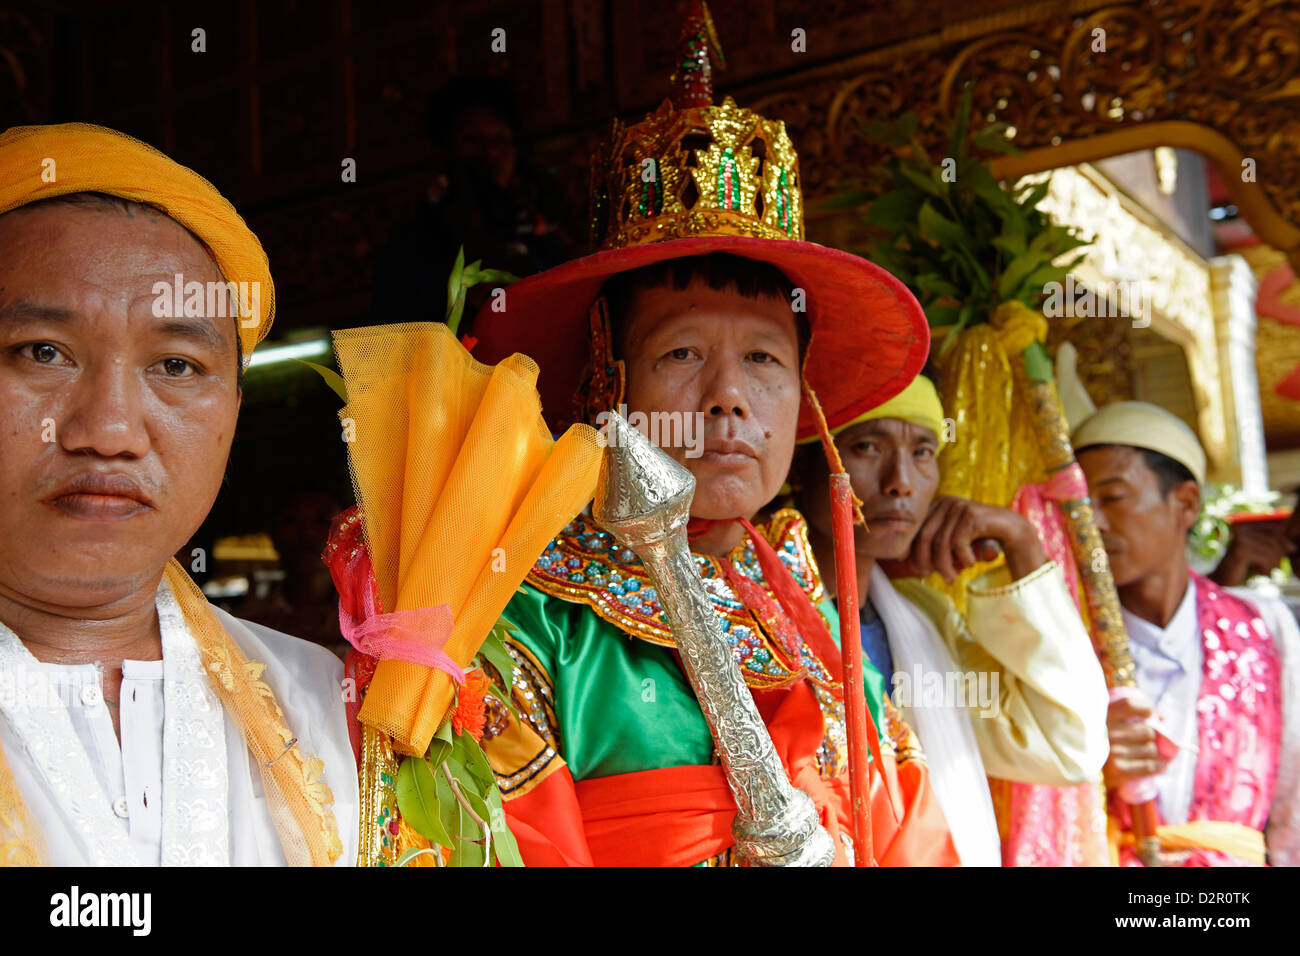 The queens and the ministers at the biggest Nat ritual (Festival of Spirits) in Taungbyon, Mandalay Division, Myanmar - Stock Image